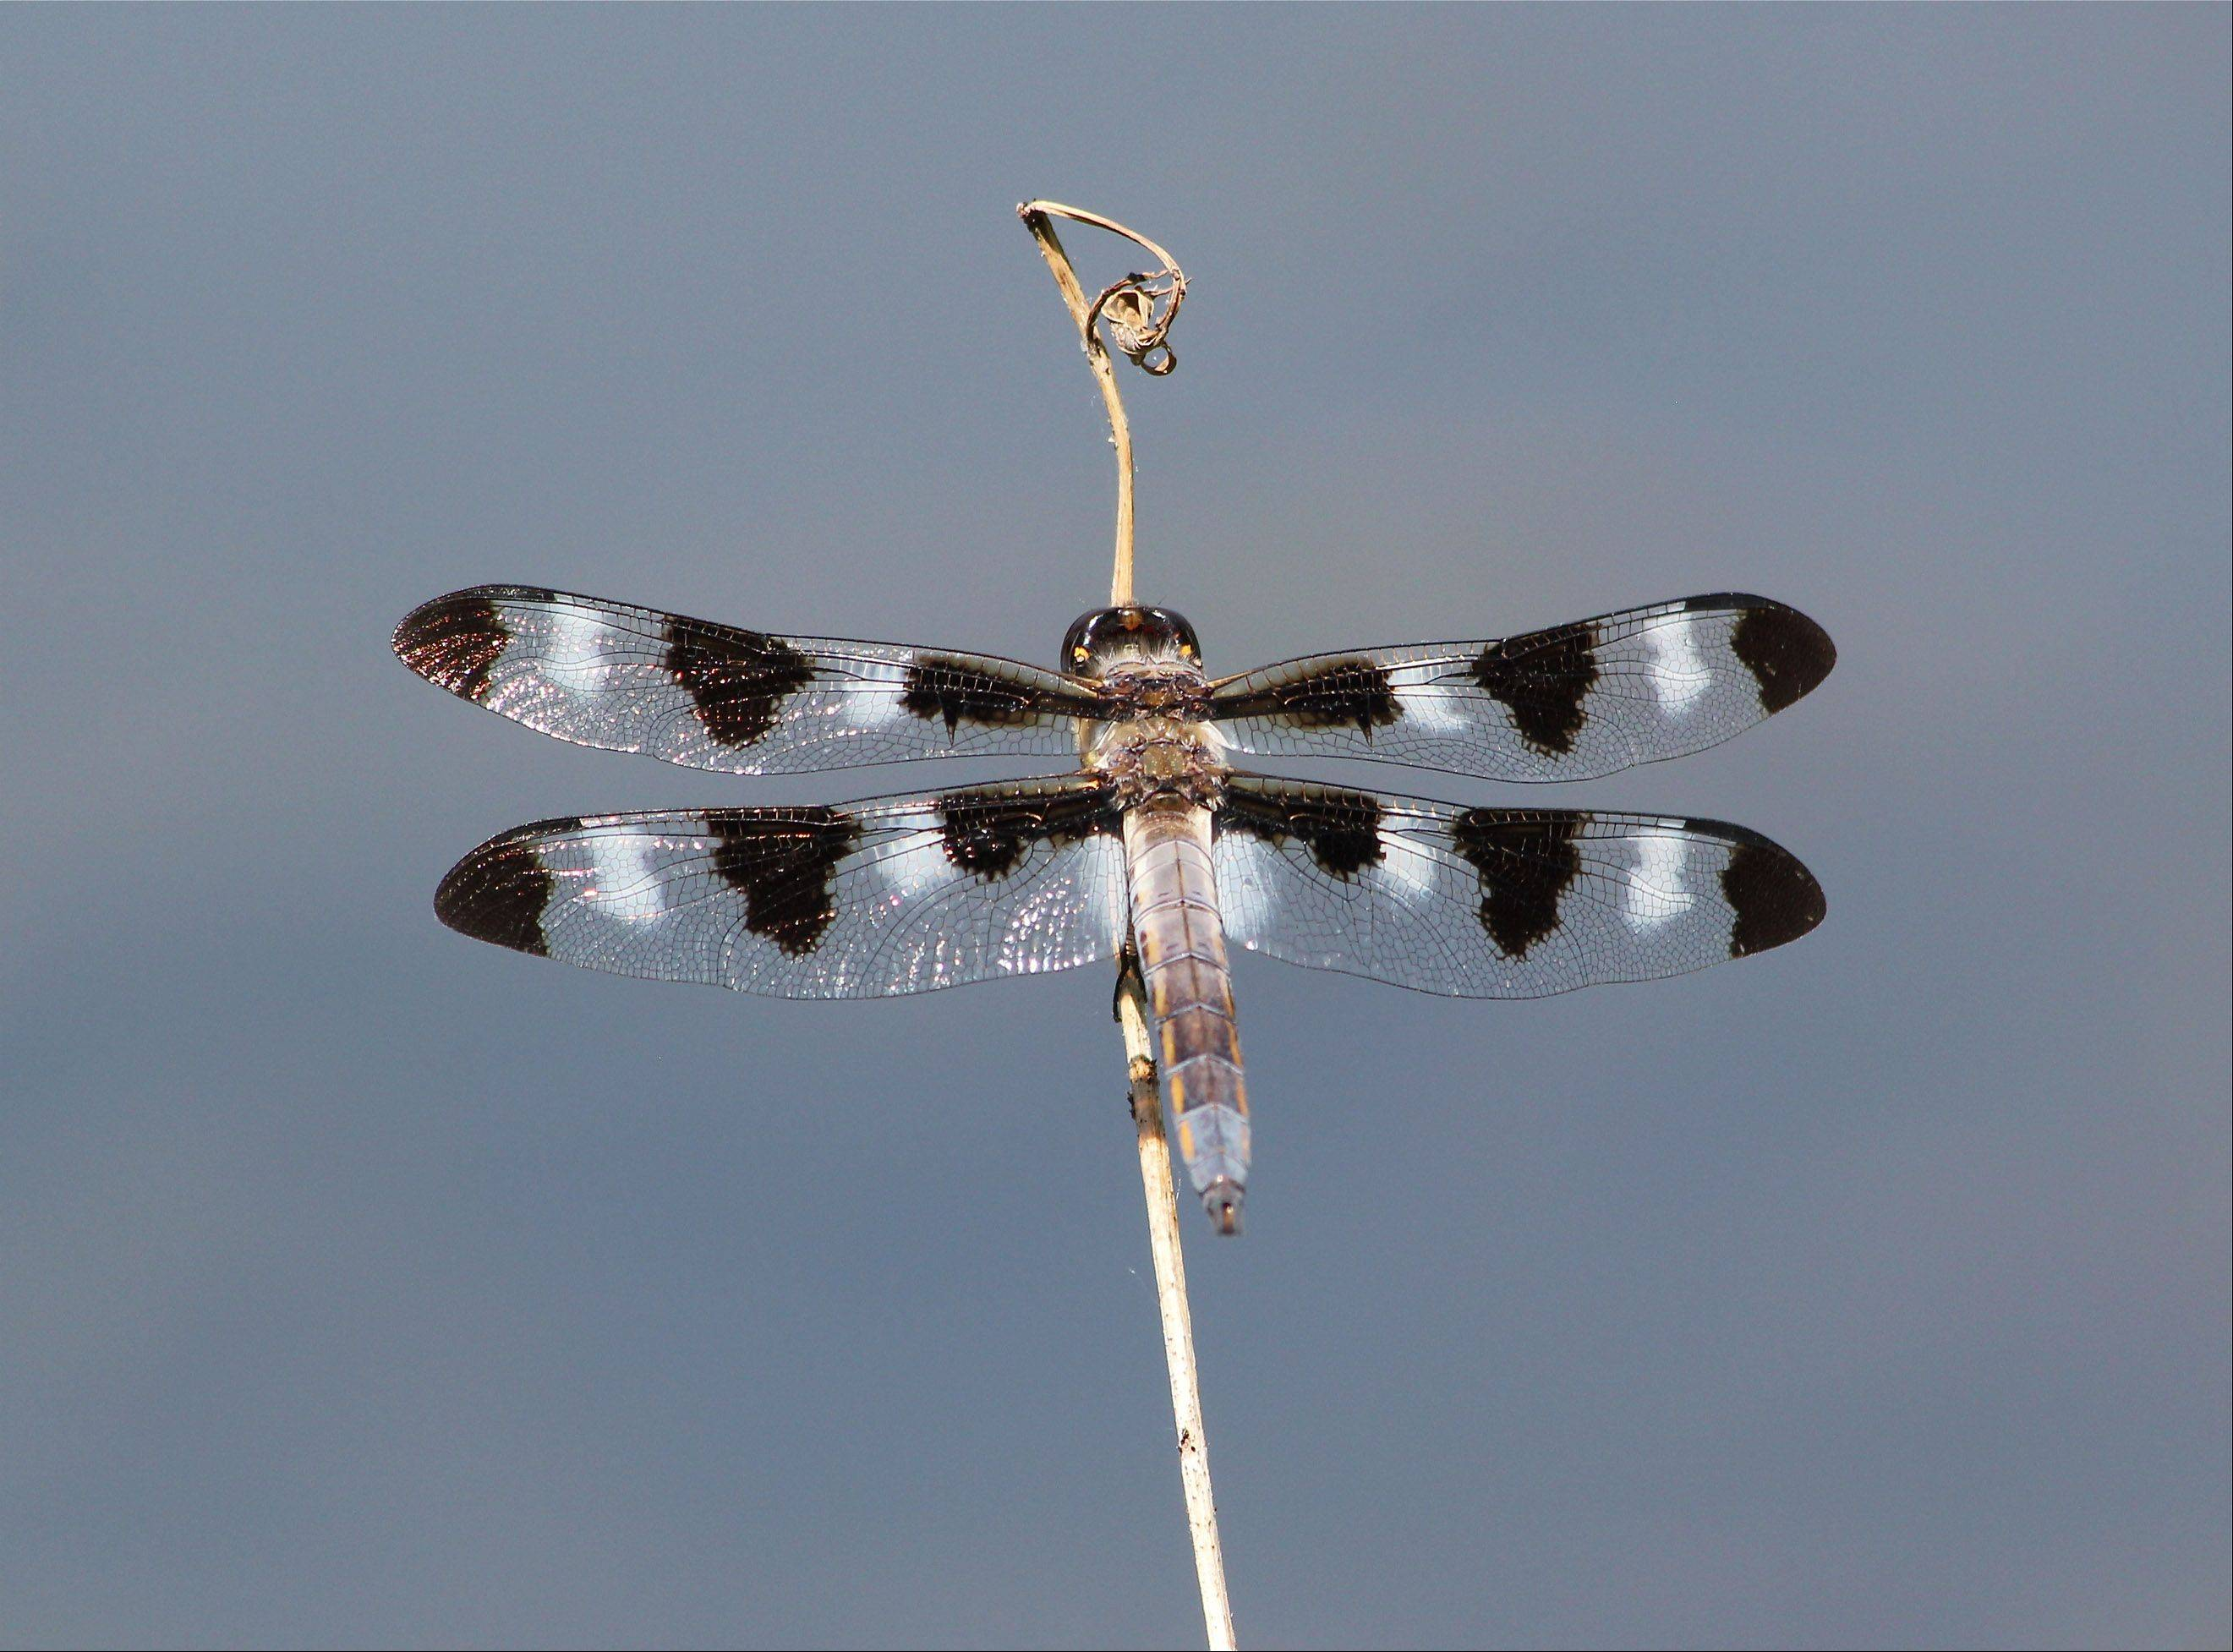 I took a photo of this dragonfly, a Libellula Pulchella Twelve-Spotted Skimmer, at the Morton Arboretum recently. I was visiting the Arboretum with my son's Monroe Middle School's six grade class for a field trip to study streams and the organisms that inhabit them.